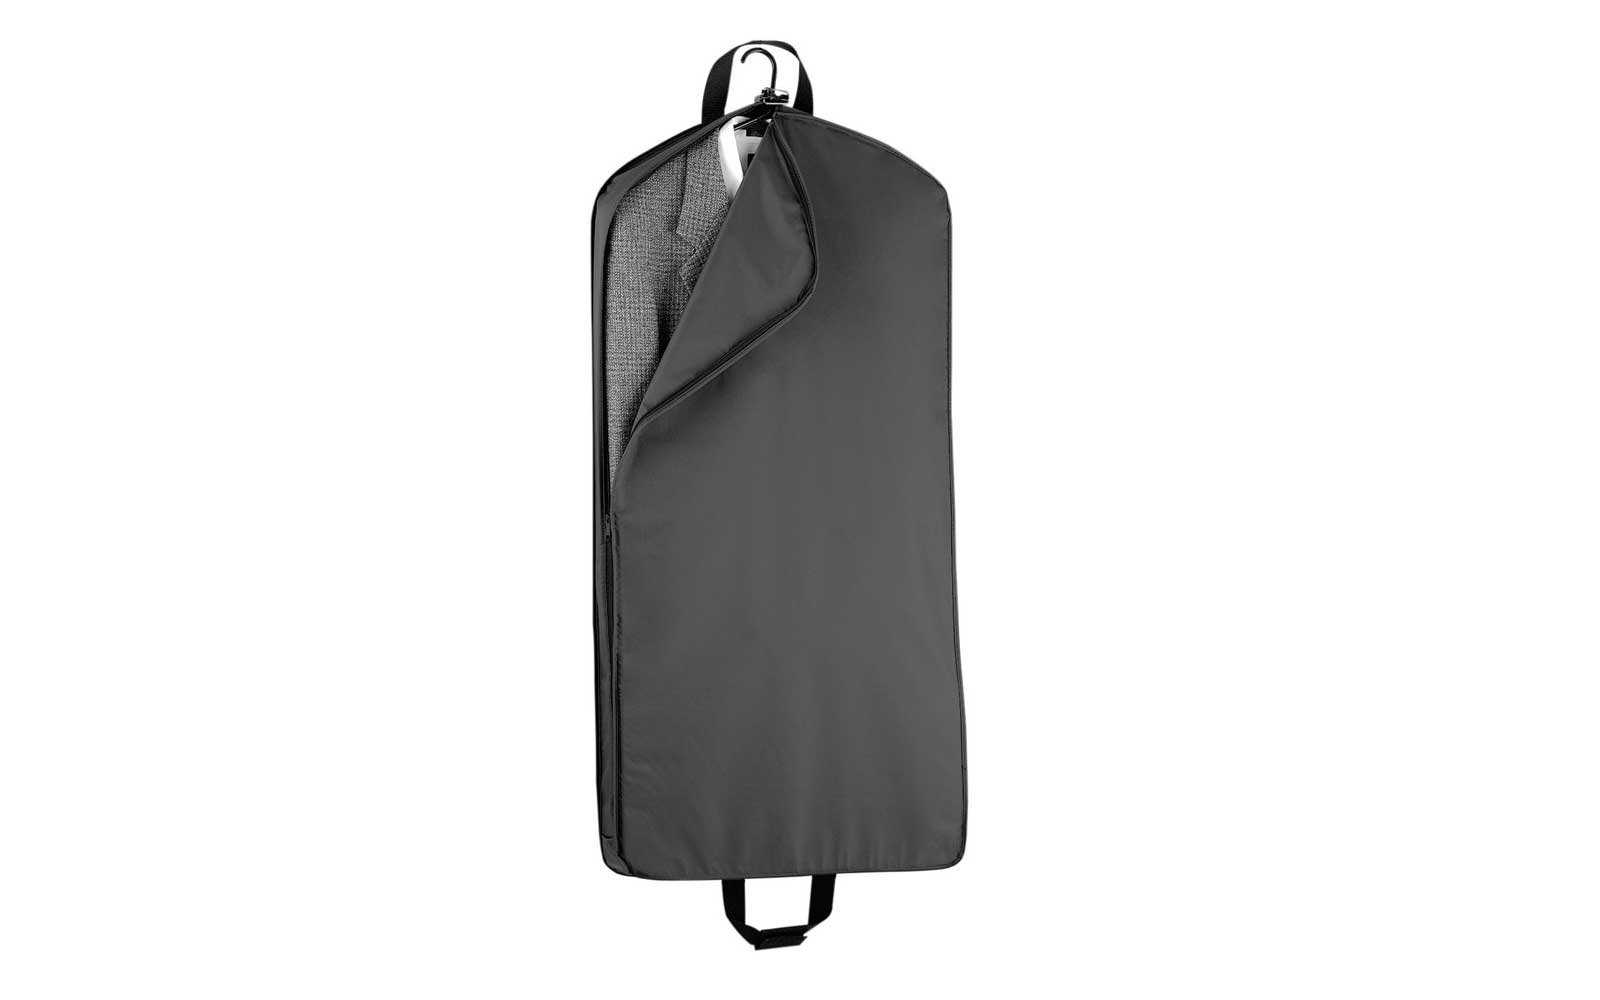 b962c5aac9 WallyBags 45-inch Extra Capacity Garment Bag with Pockets